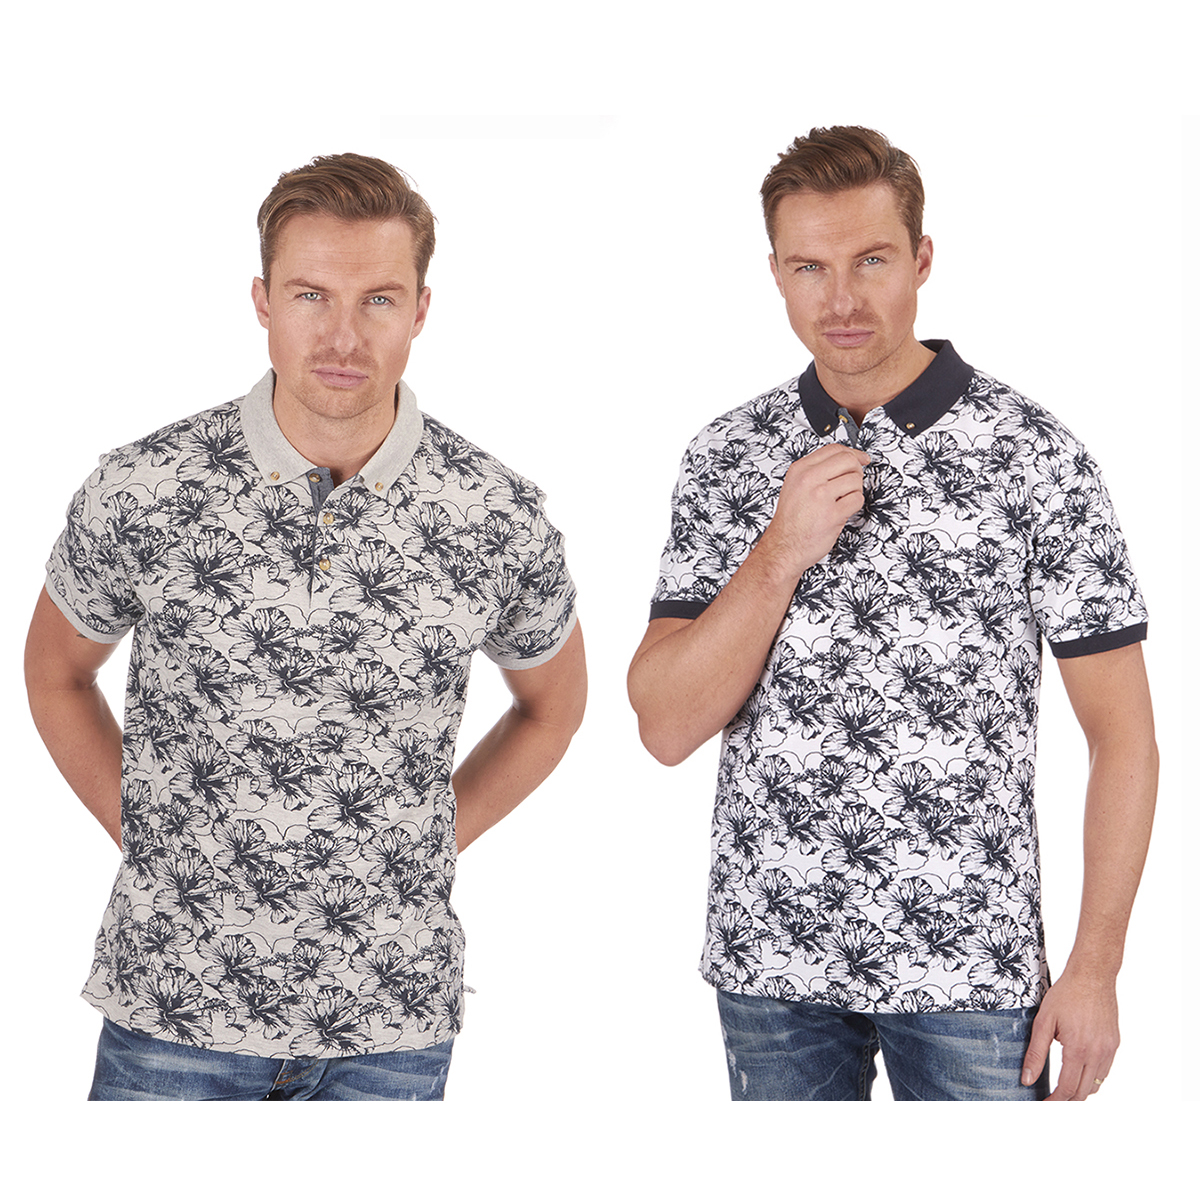 870409050e Details about URBAN REVIVAL Men's Floral Printed Polo Shirt Cotton Rich  Smart Casual Top New